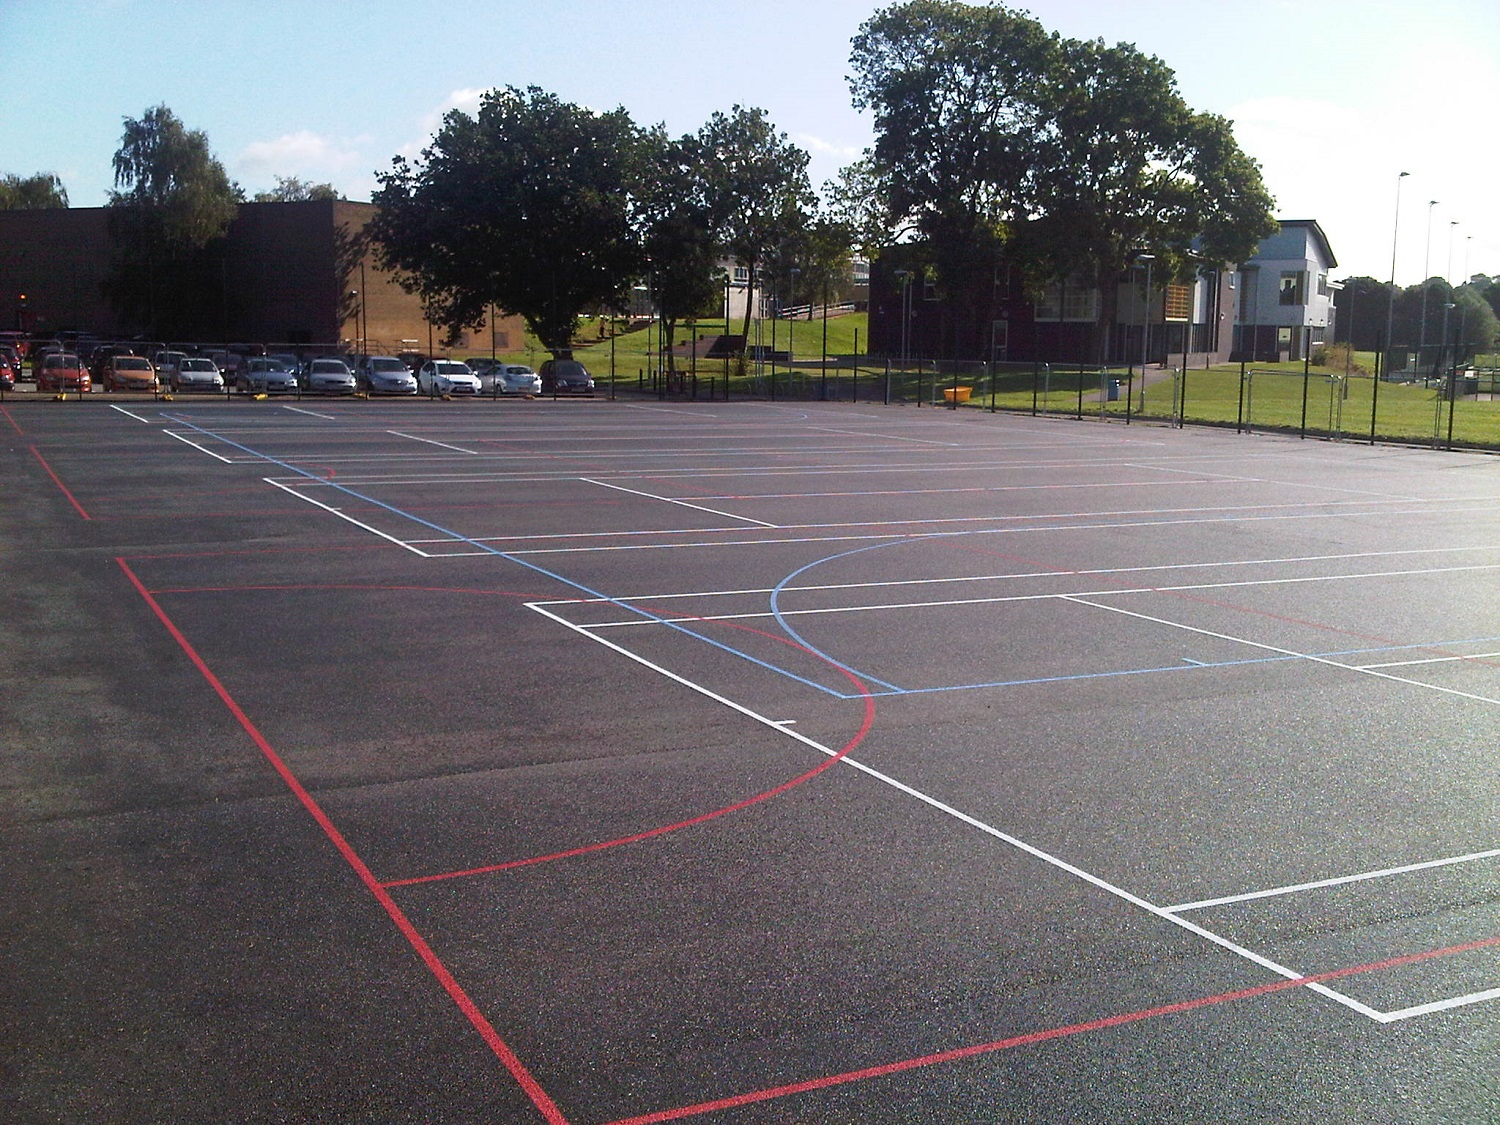 P2 Sports Court Tarmac Surfacing & Sports Court Markings at Chaddesden in Derby